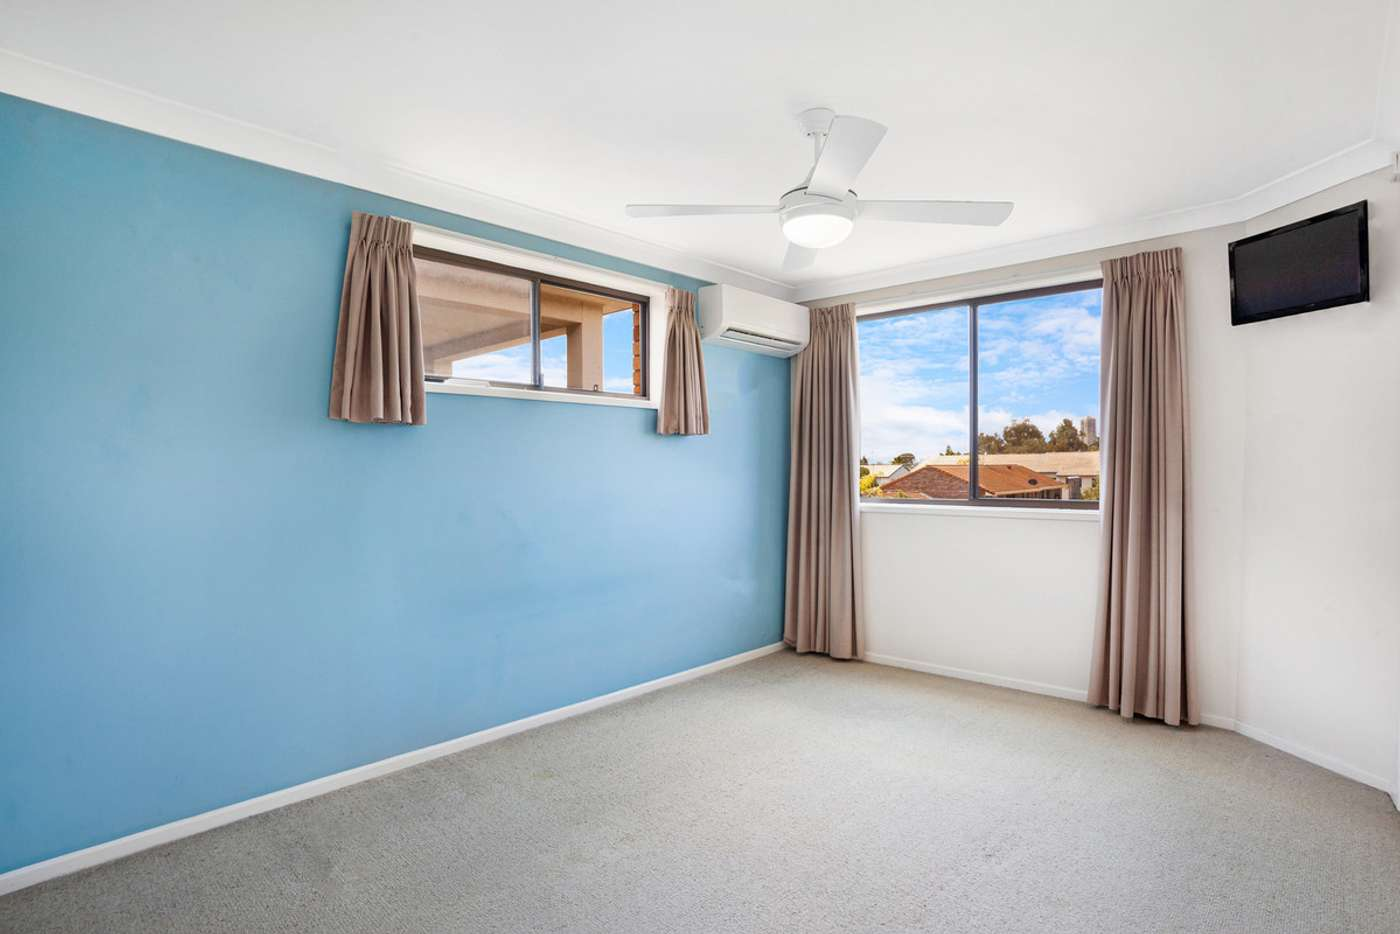 Sixth view of Homely unit listing, 7/20 Burleigh Street, Burleigh Heads QLD 4220